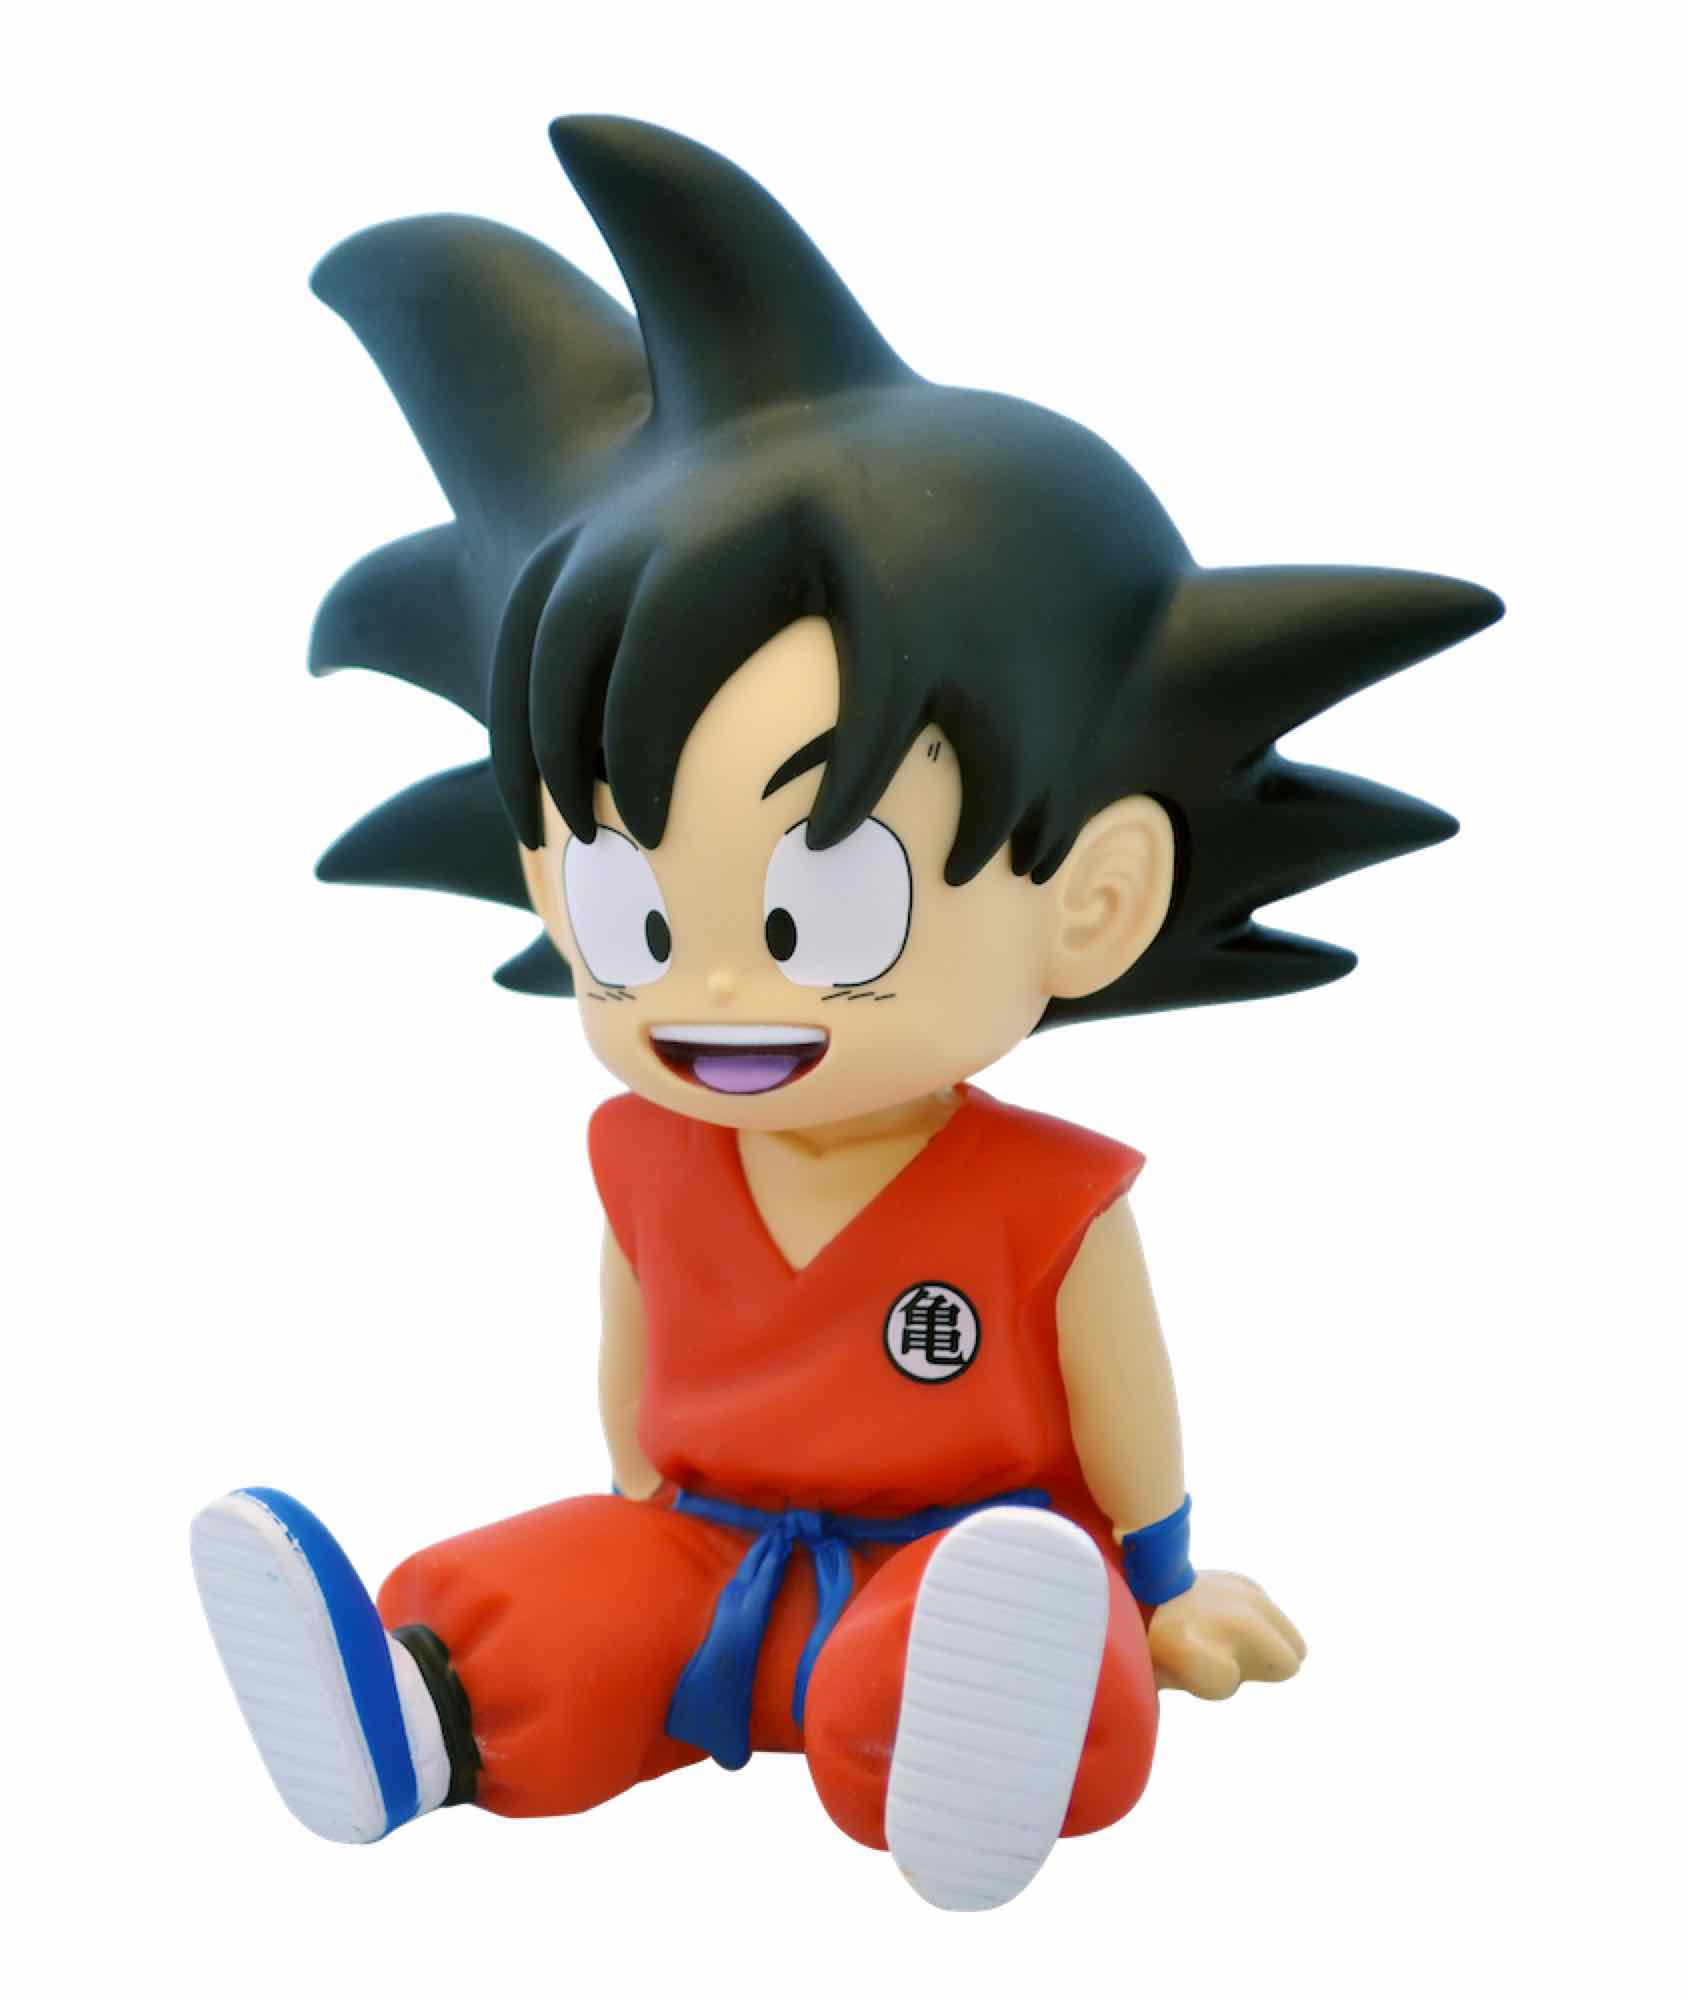 SON GOKU SENTADO MINI HUCHA 13,5 CM PVC DRAGON BALL